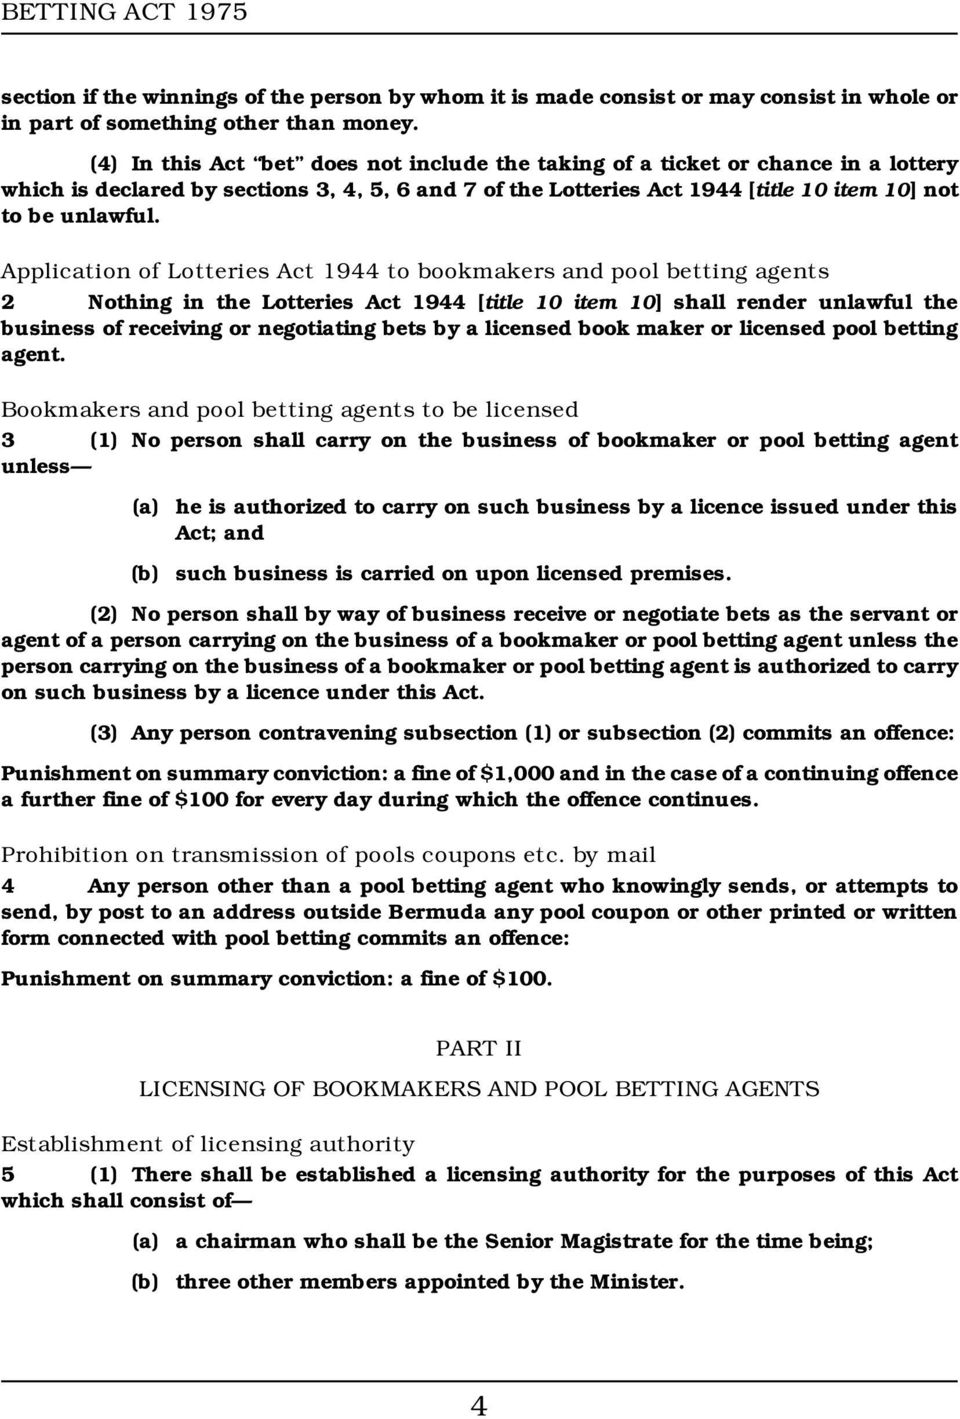 Application of Lotteries Act 1944 to bookmakers and pool betting agents 2 Nothing in the Lotteries Act 1944 [title 10 item 10] shall render unlawful the business of receiving or negotiating bets by a